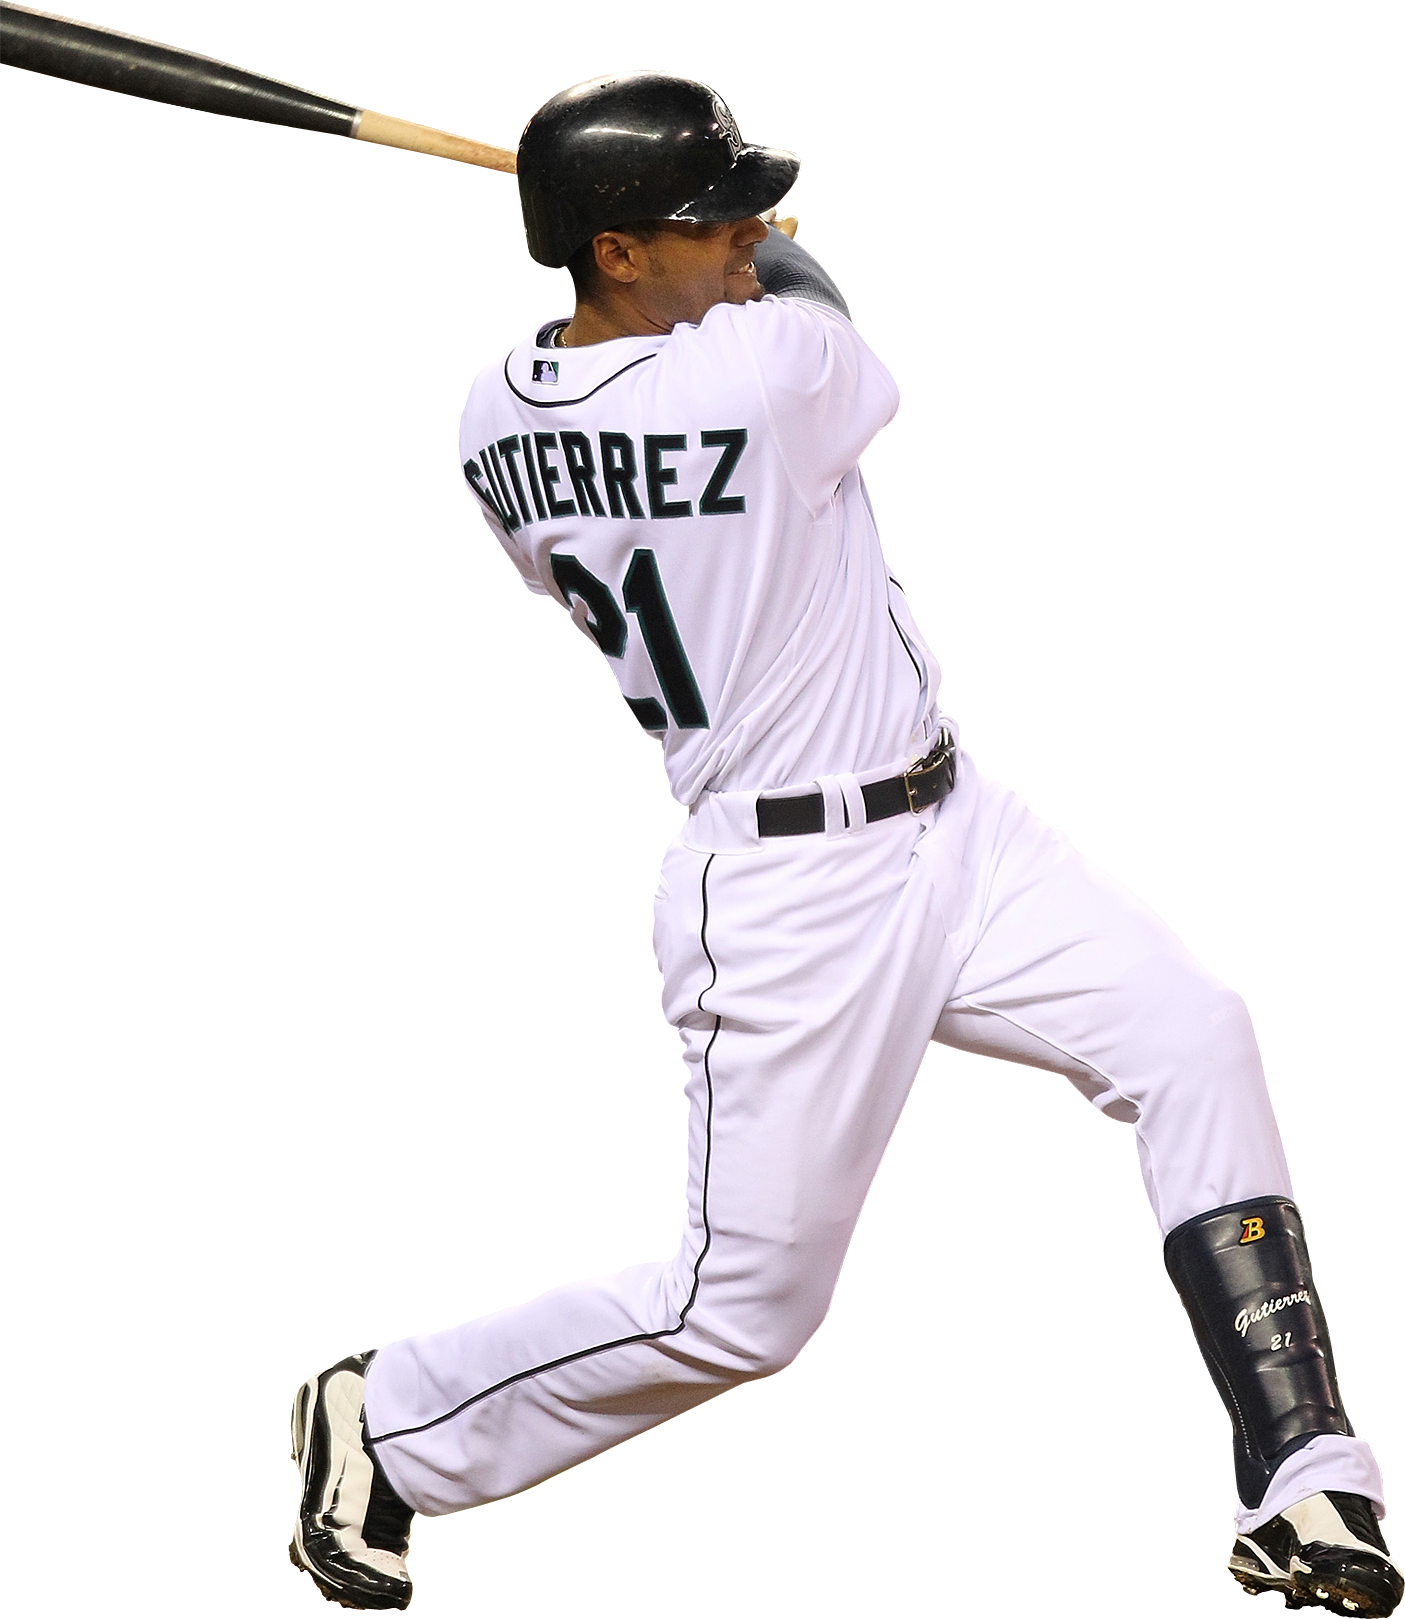 Download Baseball Player PNG Image for Free.